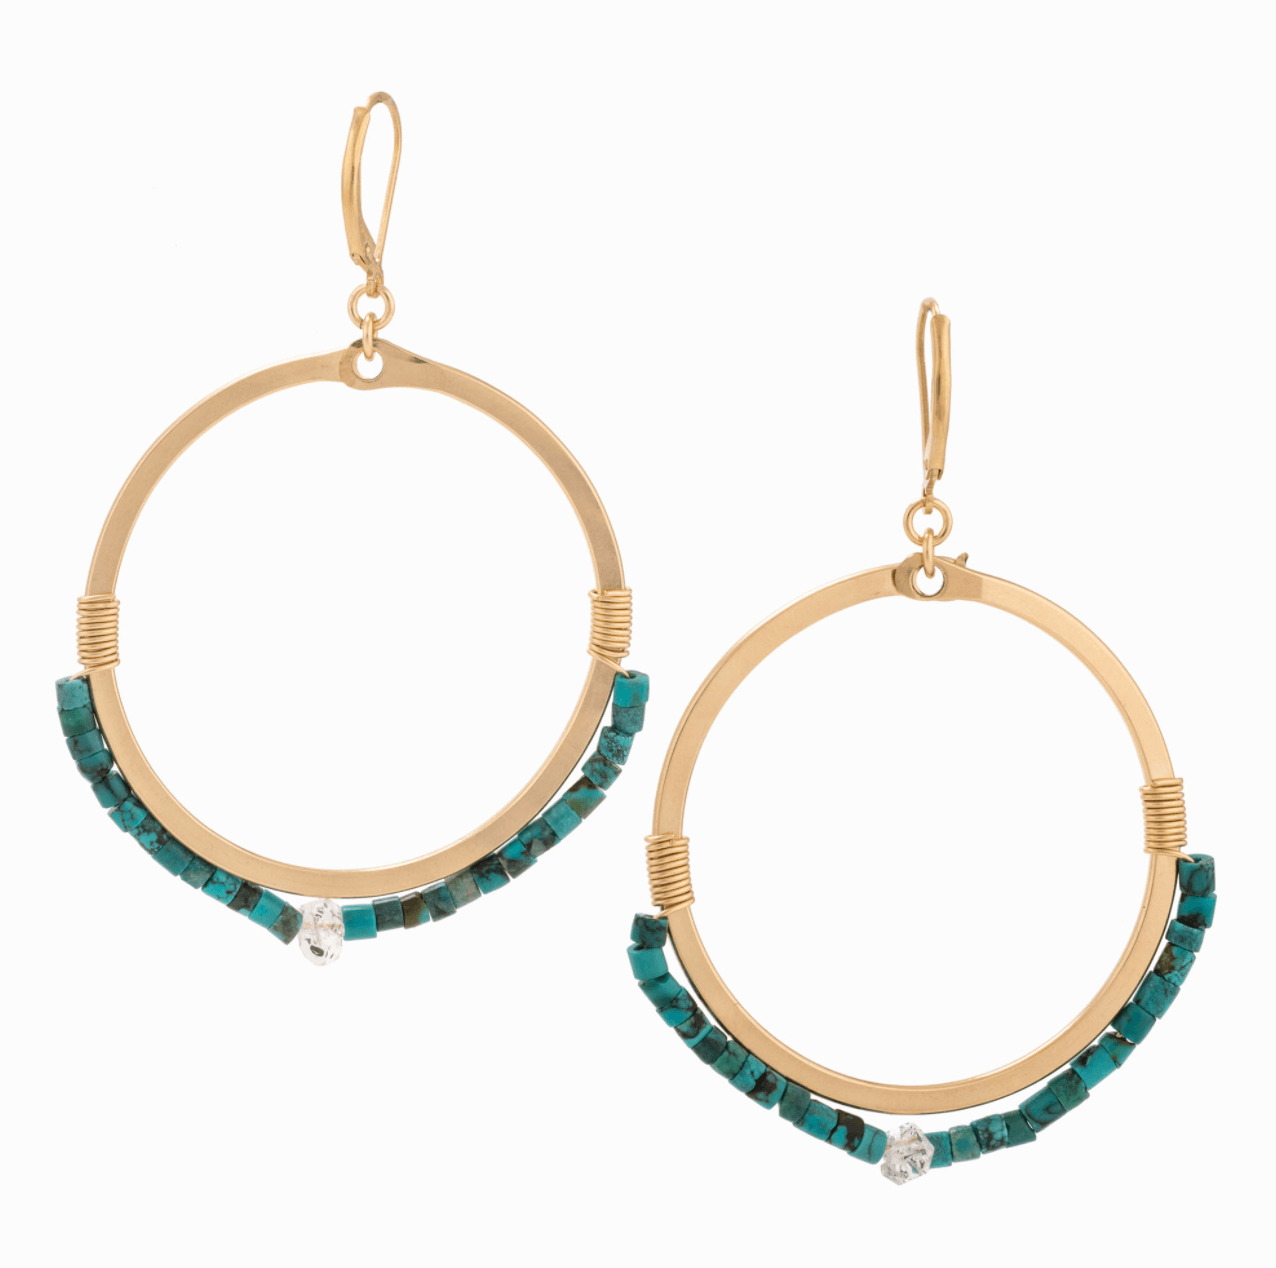 Taylor and Tessier Ames Earrings / Neighborhood Goods